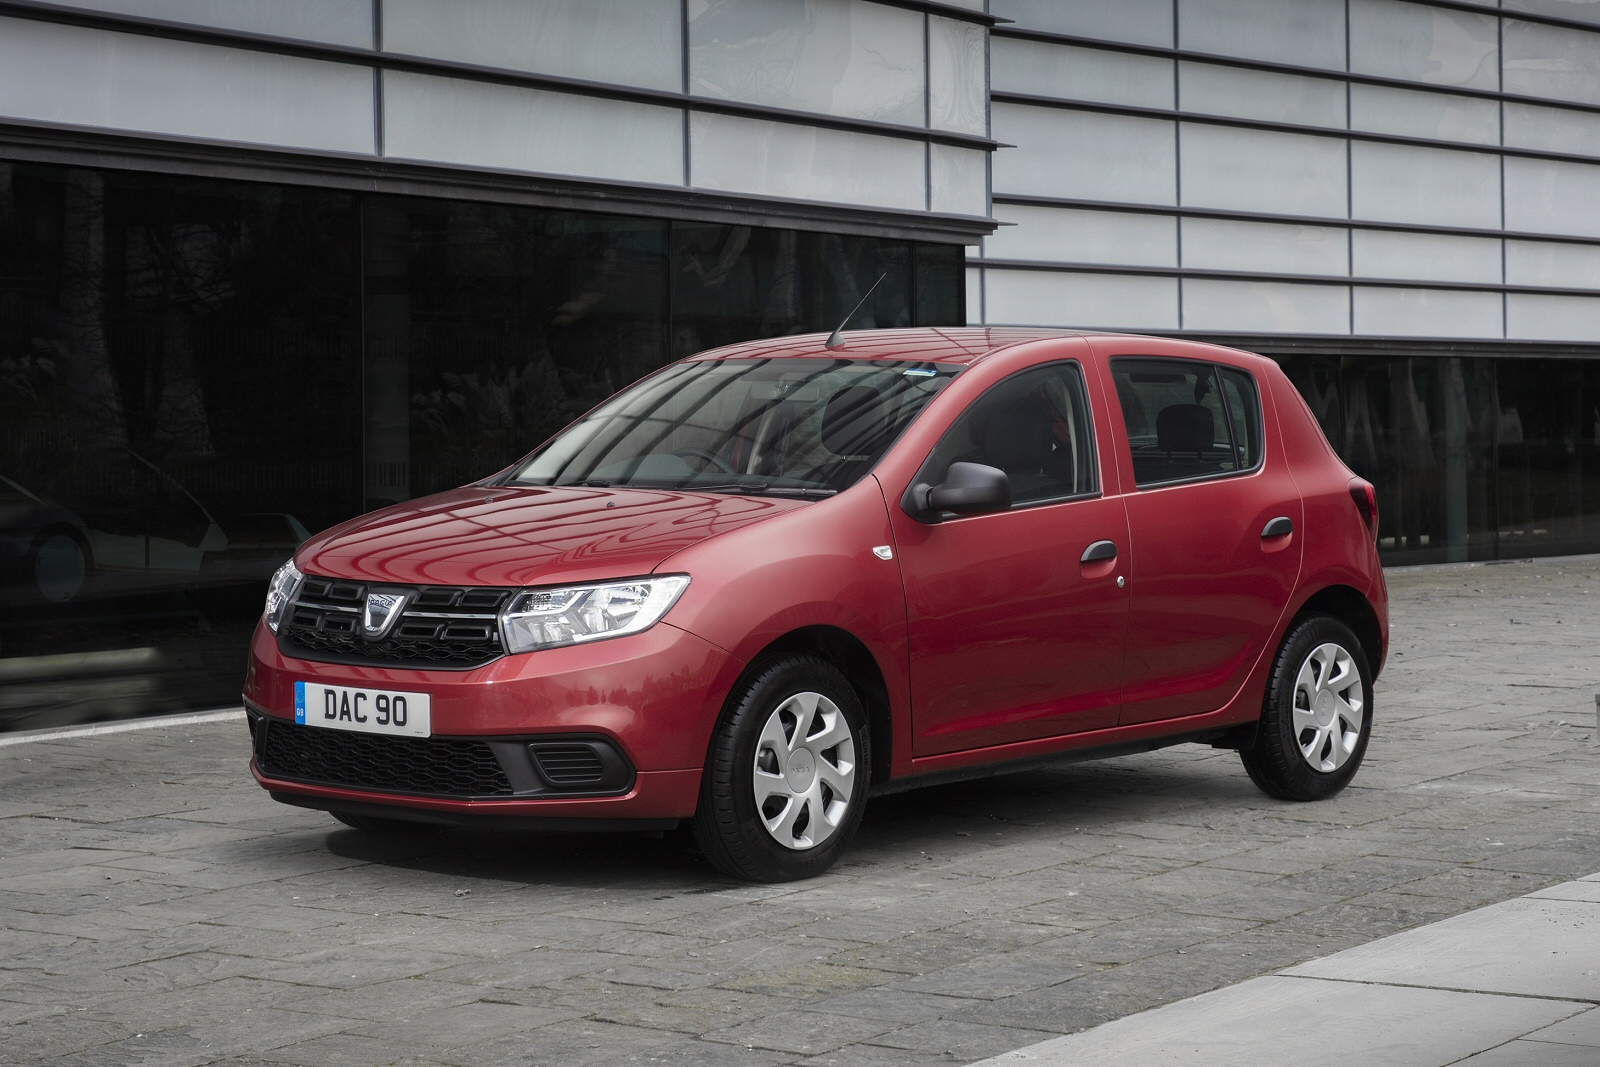 new dacia sandero stepway 0 9 tce ambiance 5dr petrol hatchback for sale bristol street. Black Bedroom Furniture Sets. Home Design Ideas